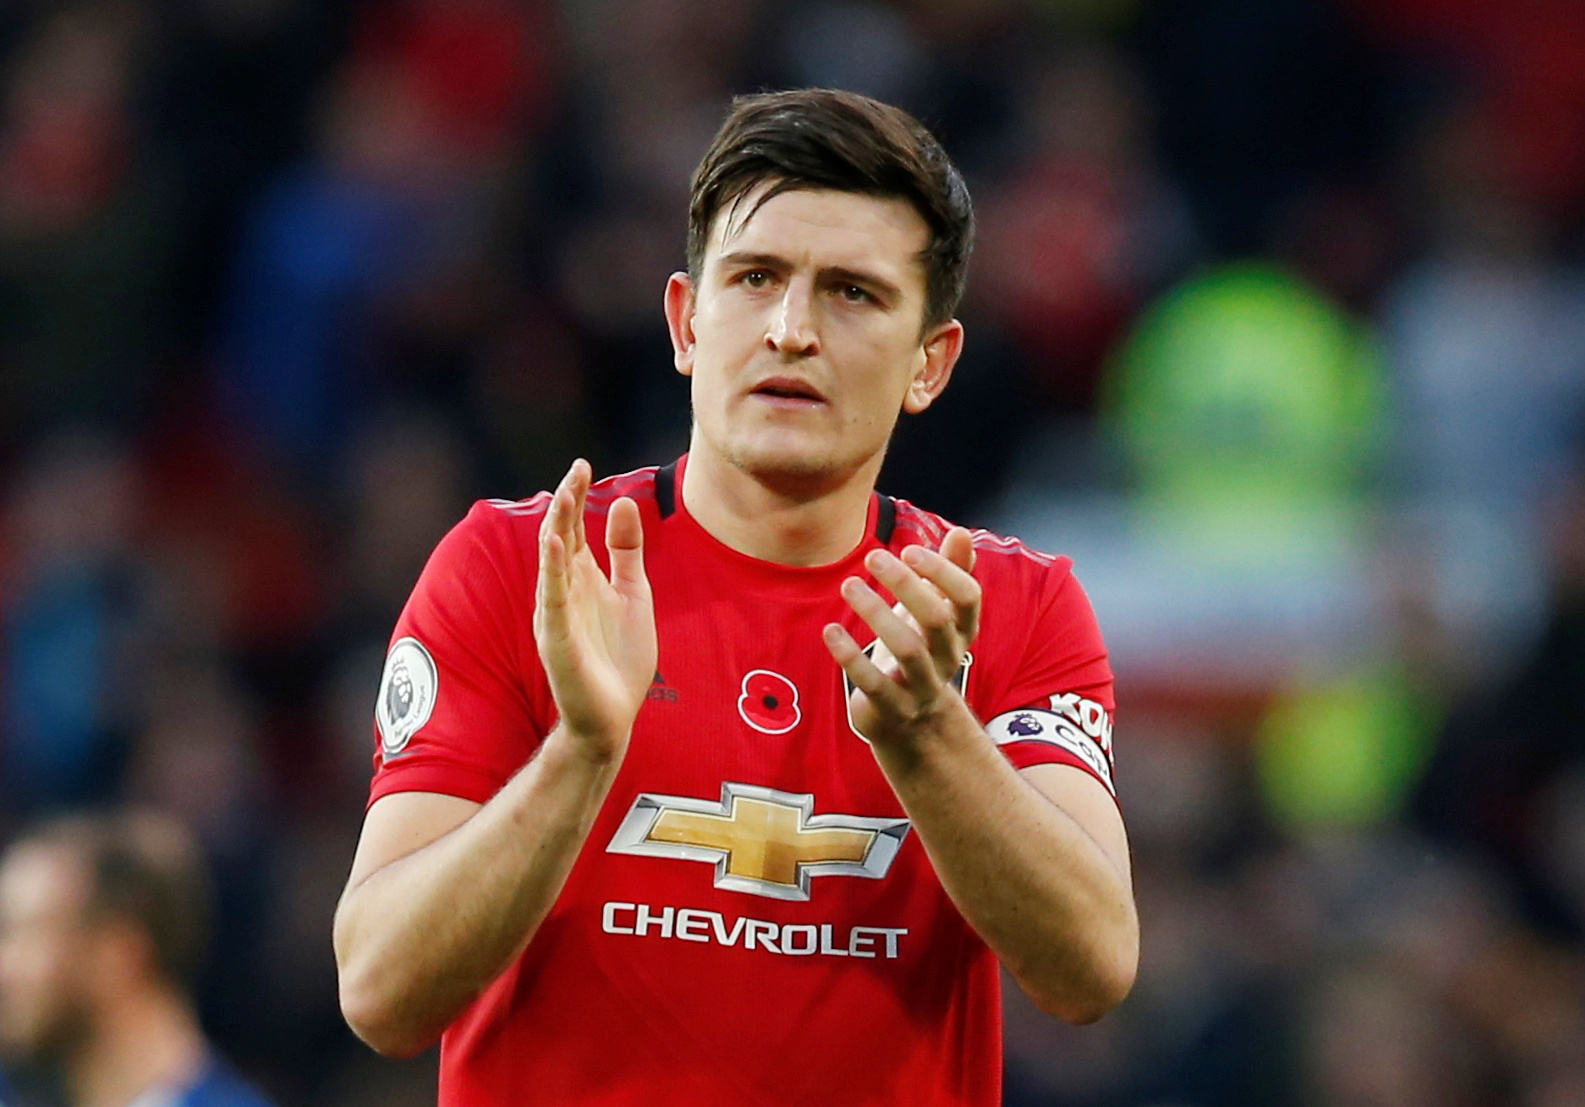 Ole Gunnar Solskjaer backs Harry Maguire as long-term Manchester United captain